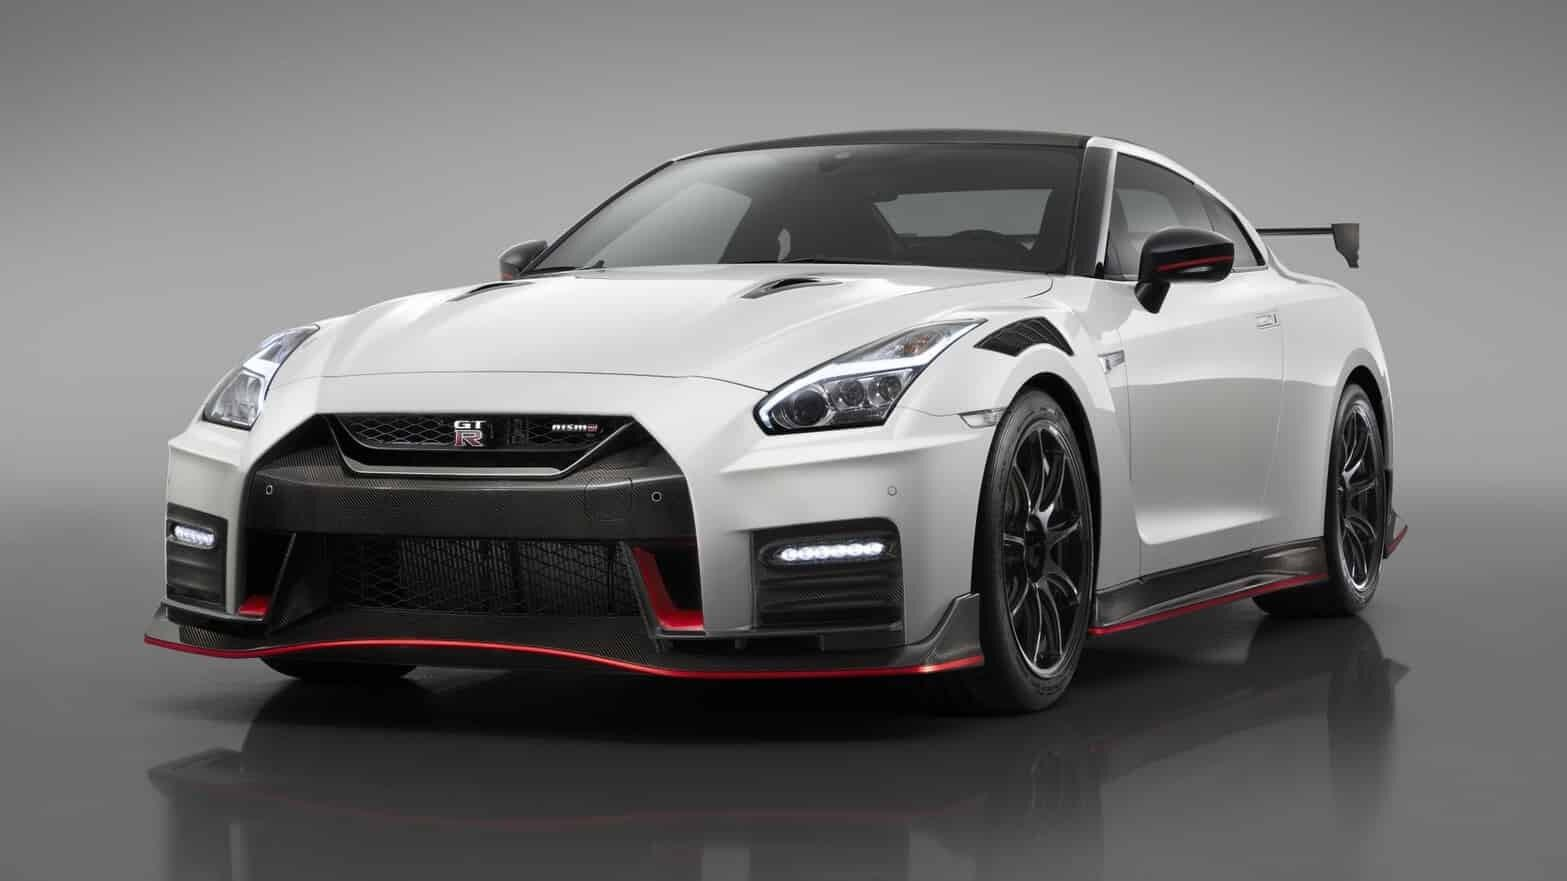 Yikes, it's a new, lighter Nissan GT-R Nismo